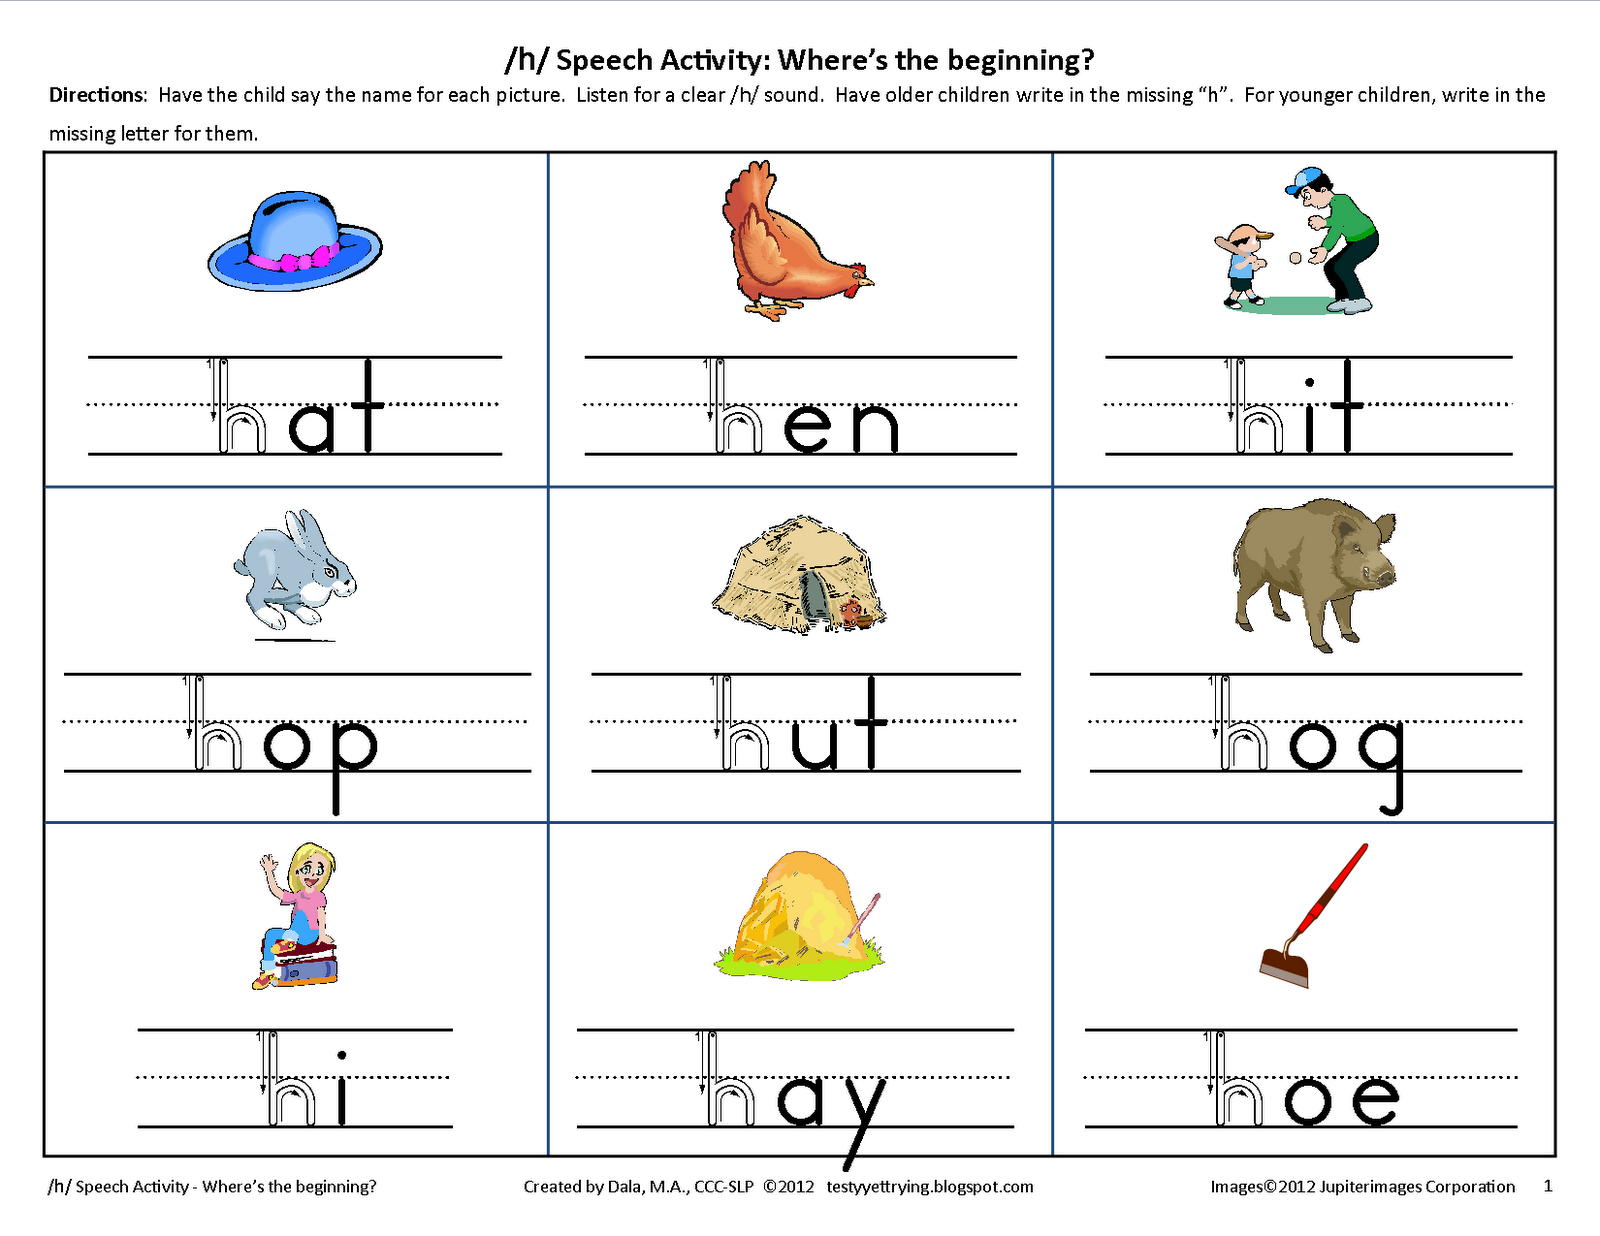 Weirdmailus  Picturesque Testy Yet Trying Initial H Speech Worksheet With Engaging Make Classroom Teachers Happy Reinforce Phonics And Handwriting And Practice Speech All At The Same Time With Lovely Shapes Worksheet Kindergarten Also Distributive Property Practice Worksheet In Addition Algebra  Functions Worksheet And Multiplcation Worksheets As Well As First Grade Handwriting Worksheets Additionally Th Grade Math Printable Worksheets From Testyyettryingblogspotcom With Weirdmailus  Engaging Testy Yet Trying Initial H Speech Worksheet With Lovely Make Classroom Teachers Happy Reinforce Phonics And Handwriting And Practice Speech All At The Same Time And Picturesque Shapes Worksheet Kindergarten Also Distributive Property Practice Worksheet In Addition Algebra  Functions Worksheet From Testyyettryingblogspotcom